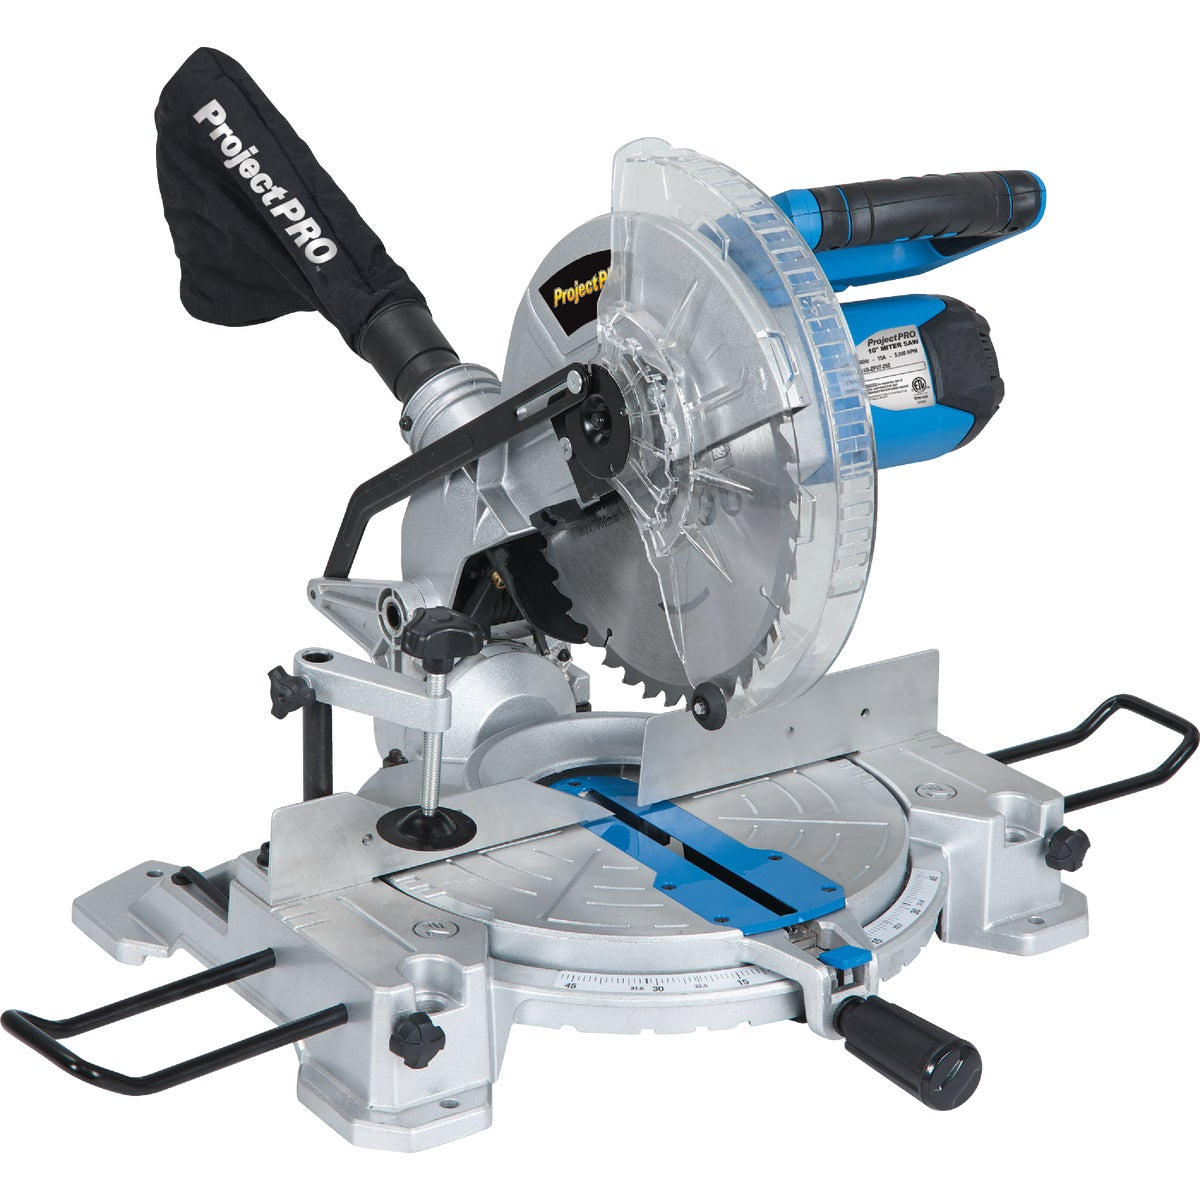 "10"" MITER SAW - 380903 by Do it Best"